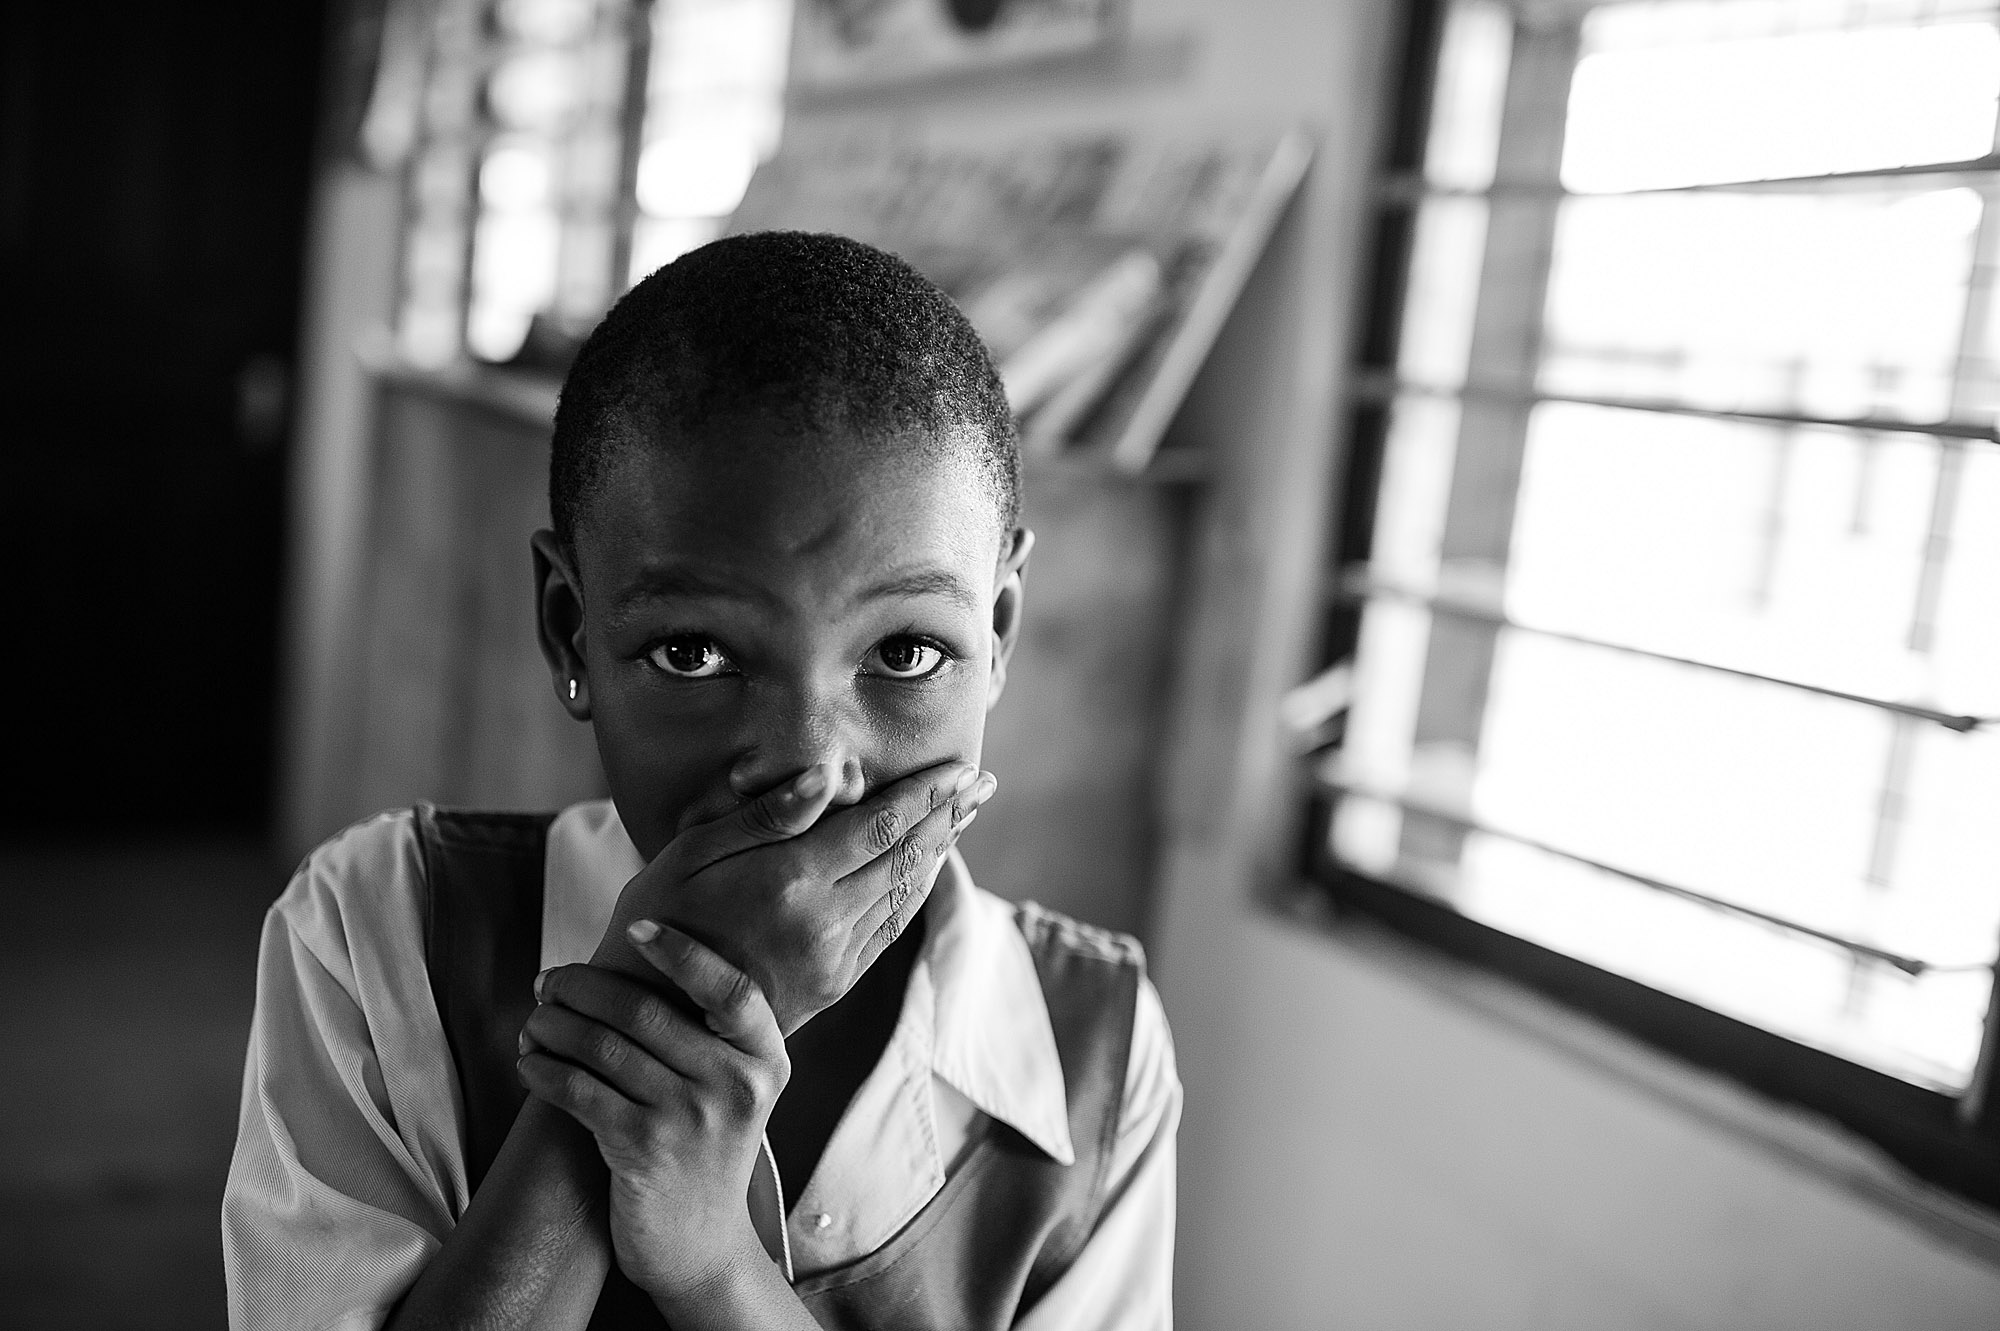 Maca, a student at a school for special needs in Accra, Ghana falls on the Autism Spectrum.  Photographed for St. Peter's University Hospital